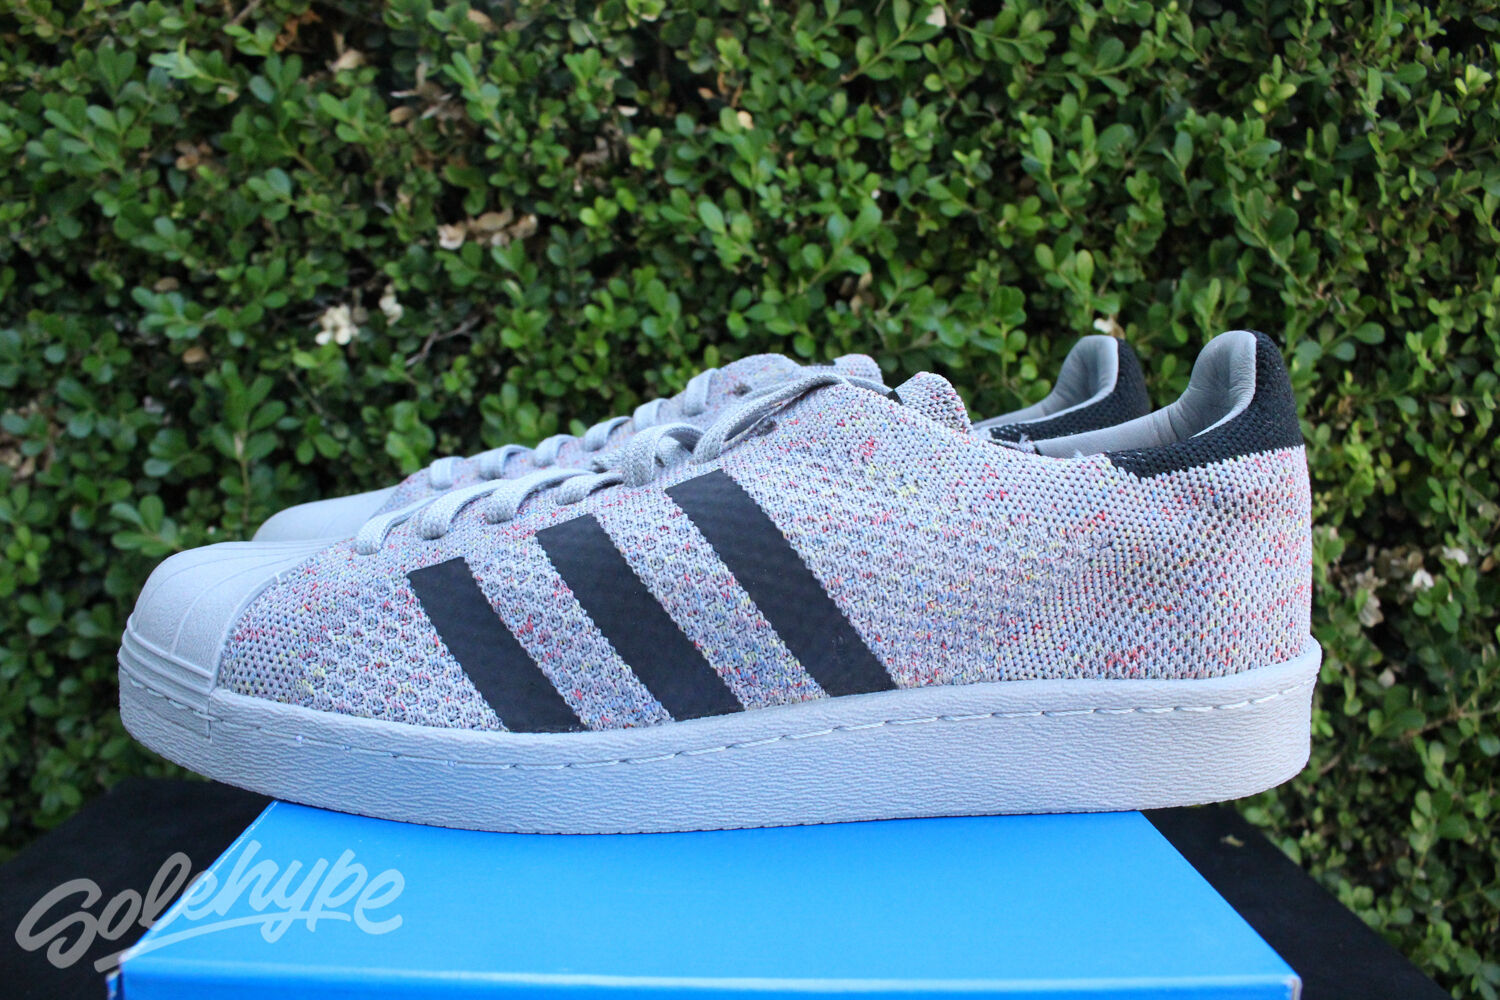 ADIDAS SUPERSTAR 80 'S PK SZ 9.5 MULTICOLOR GRAY S75843 GREY WHITE PRIMEKNIT S75843 GRAY 8bd9f6